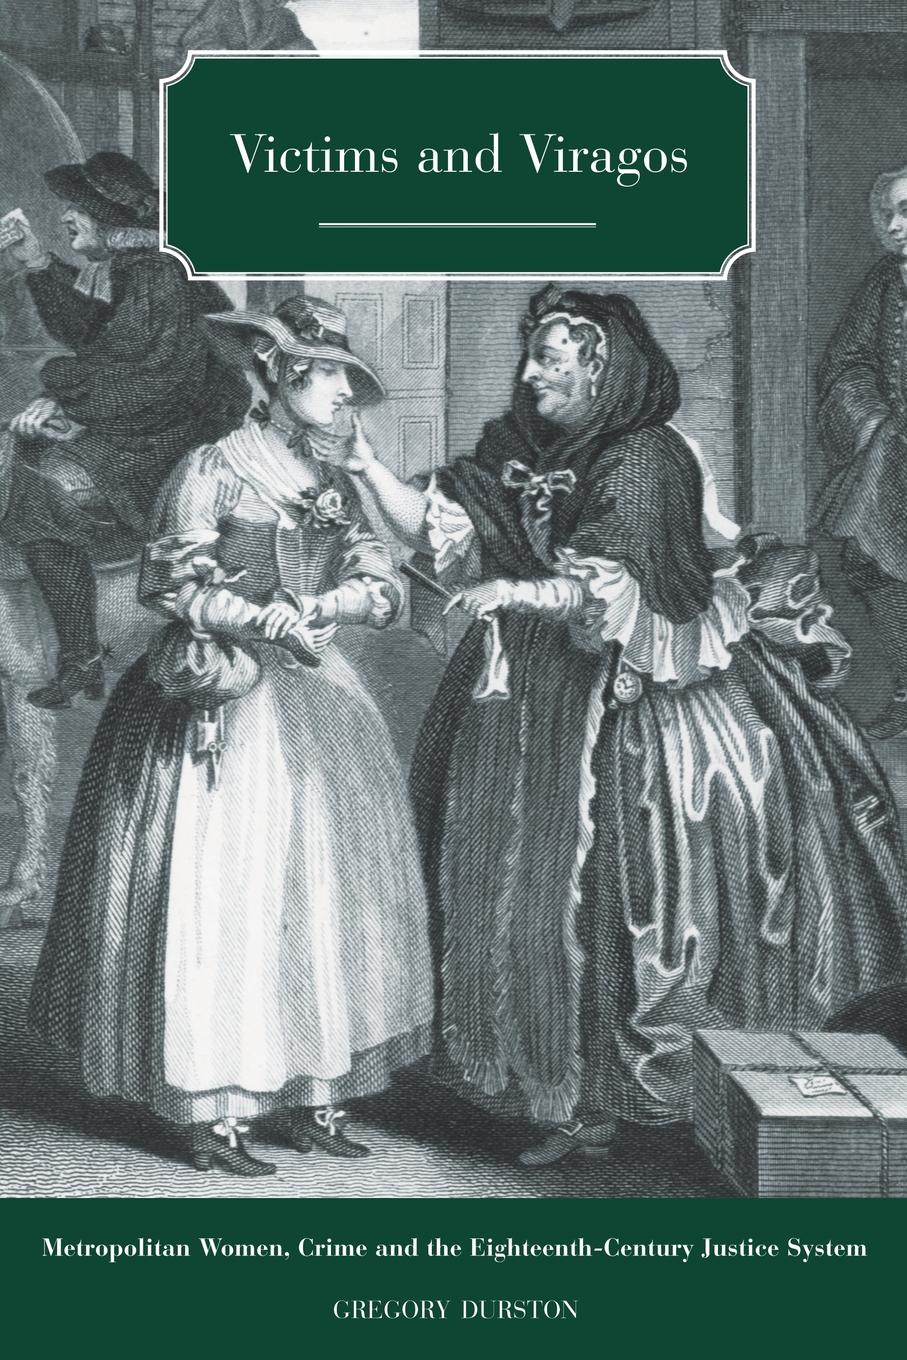 Gregory Durston Victims and Viragos. Metropolitan Women, Crime and the Eighteenth-Century Justice System shuy language crimes